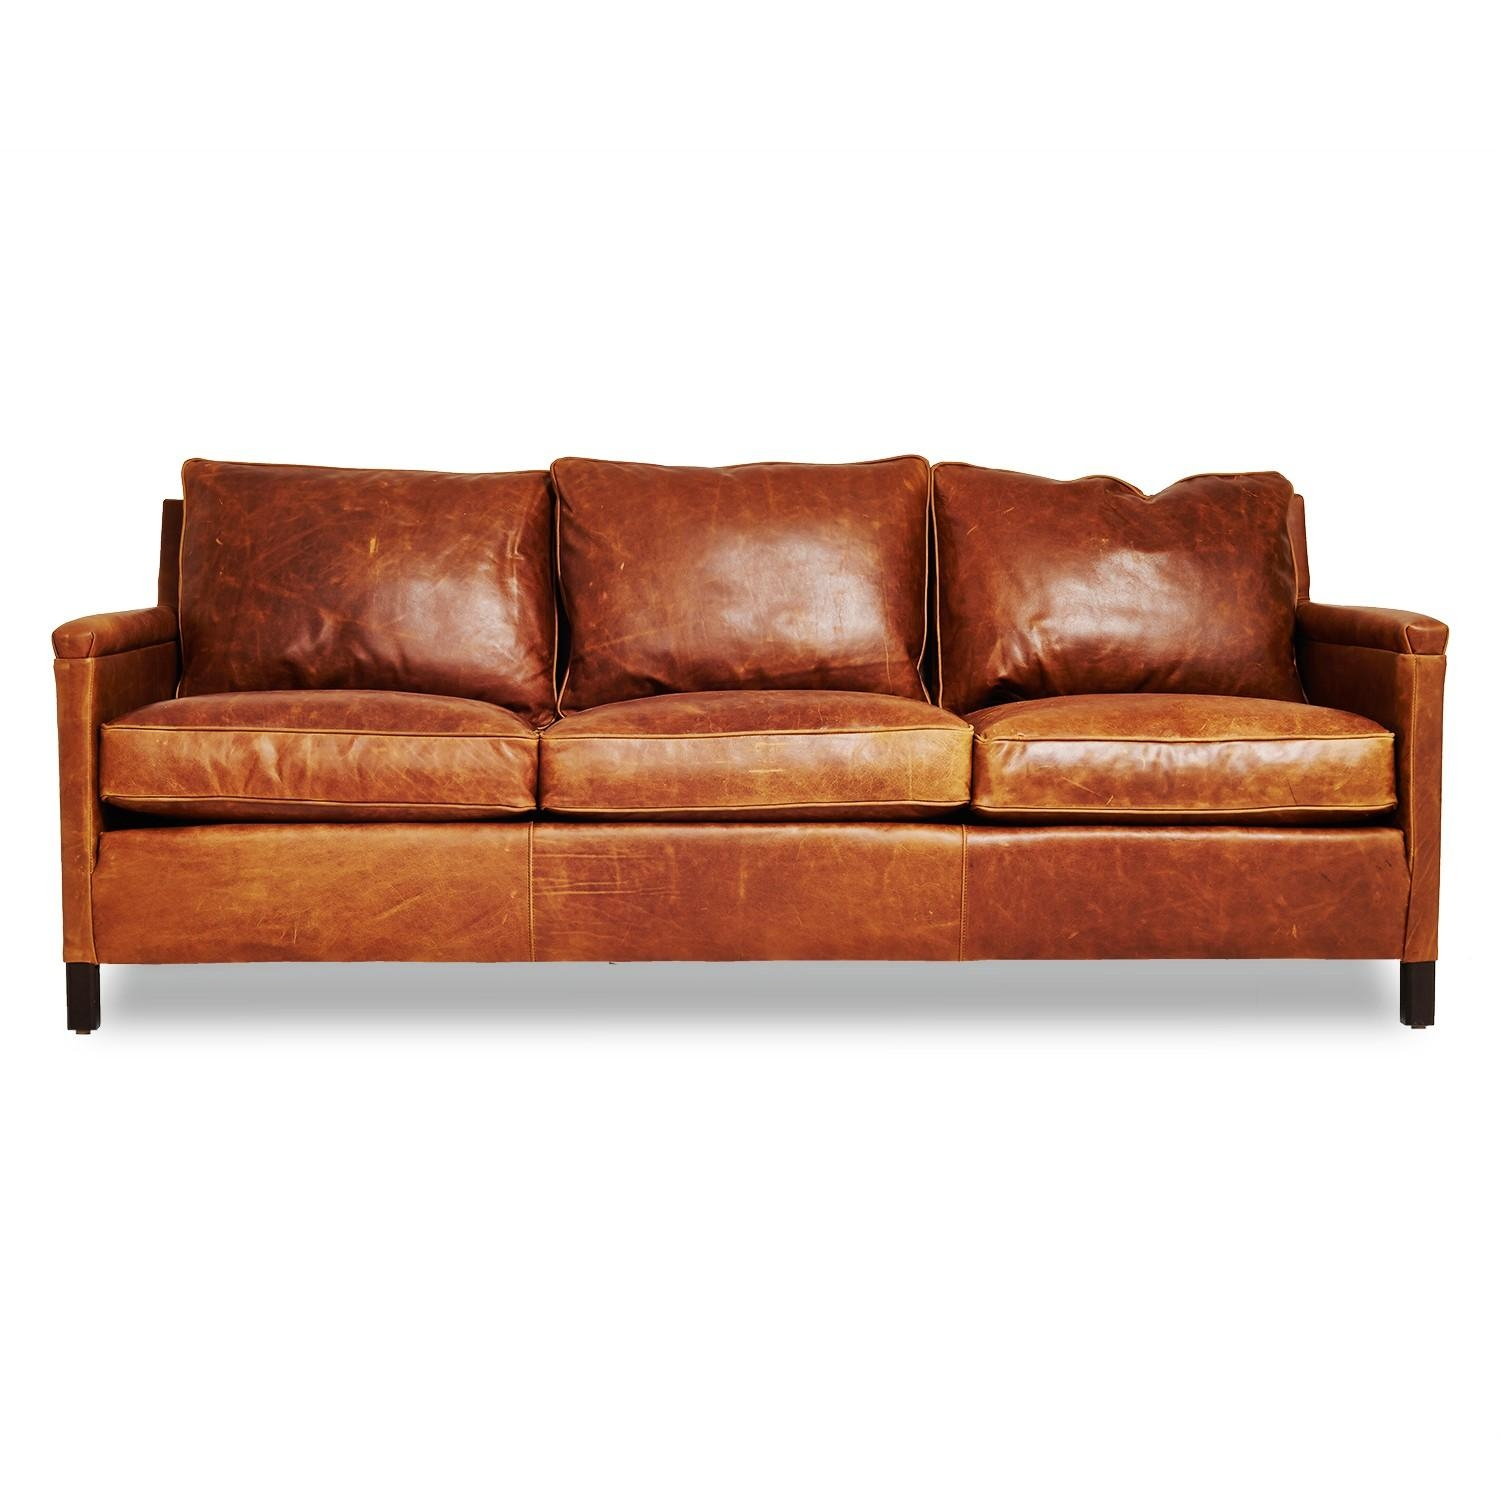 Sofas Center : Caramel Colored Leather Sofascaramel Sofa Set Camel Regarding Camel Color Leather Sofas (View 7 of 20)